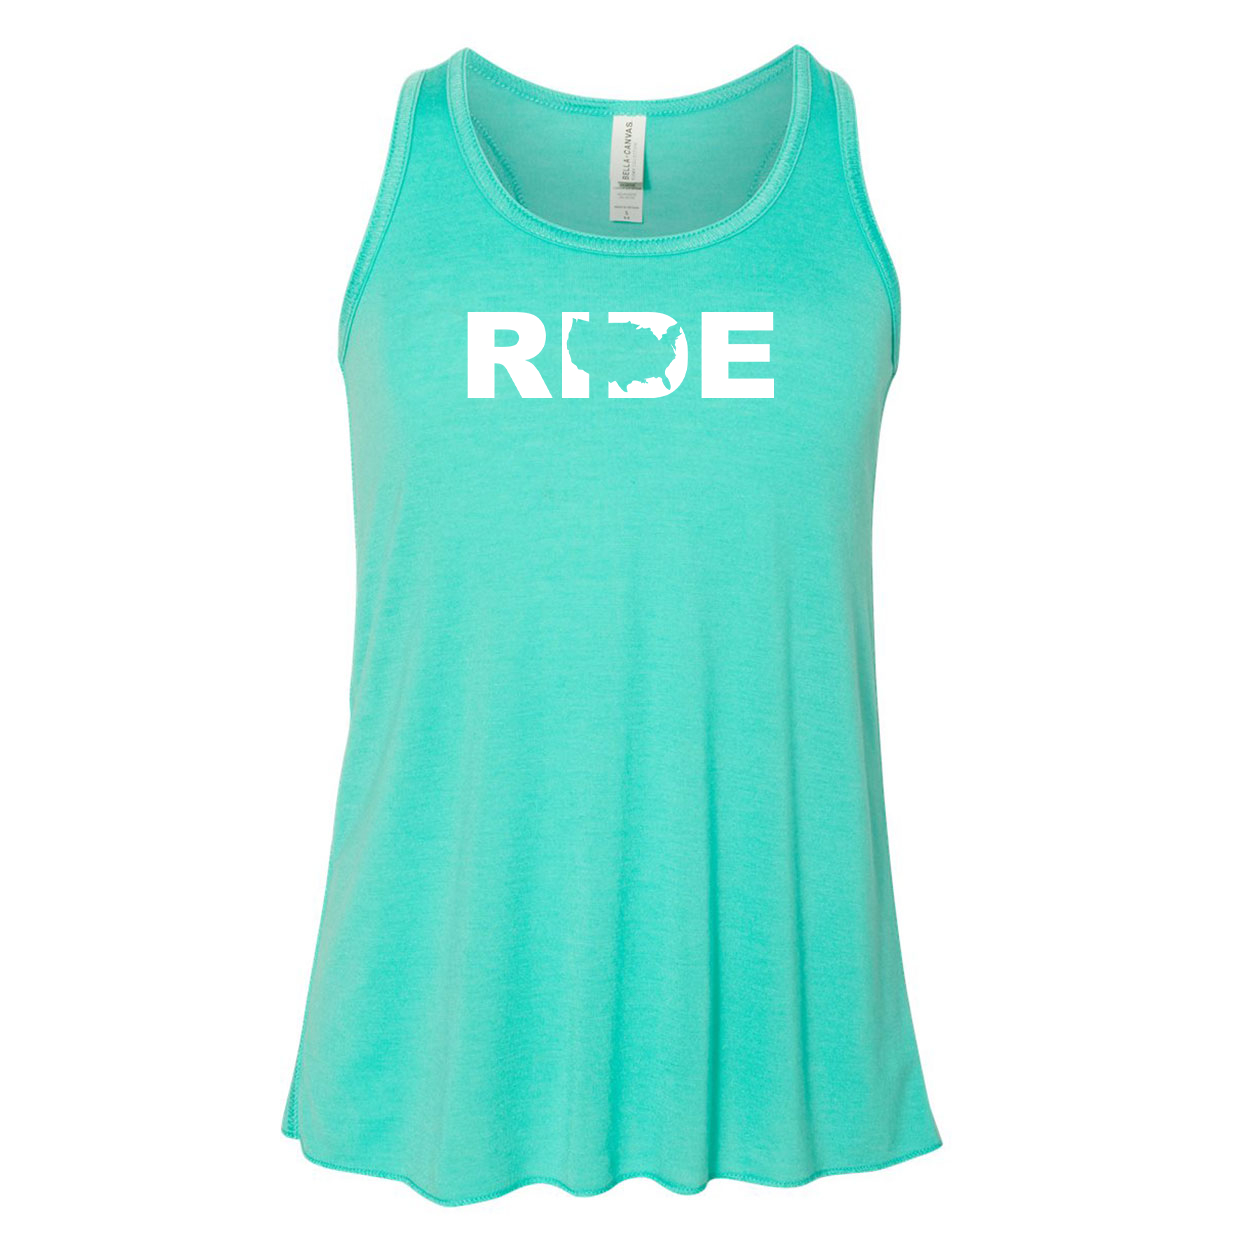 Ride United States Classic Youth Girls Flowy Racerback Tank Top Teal (White Logo)